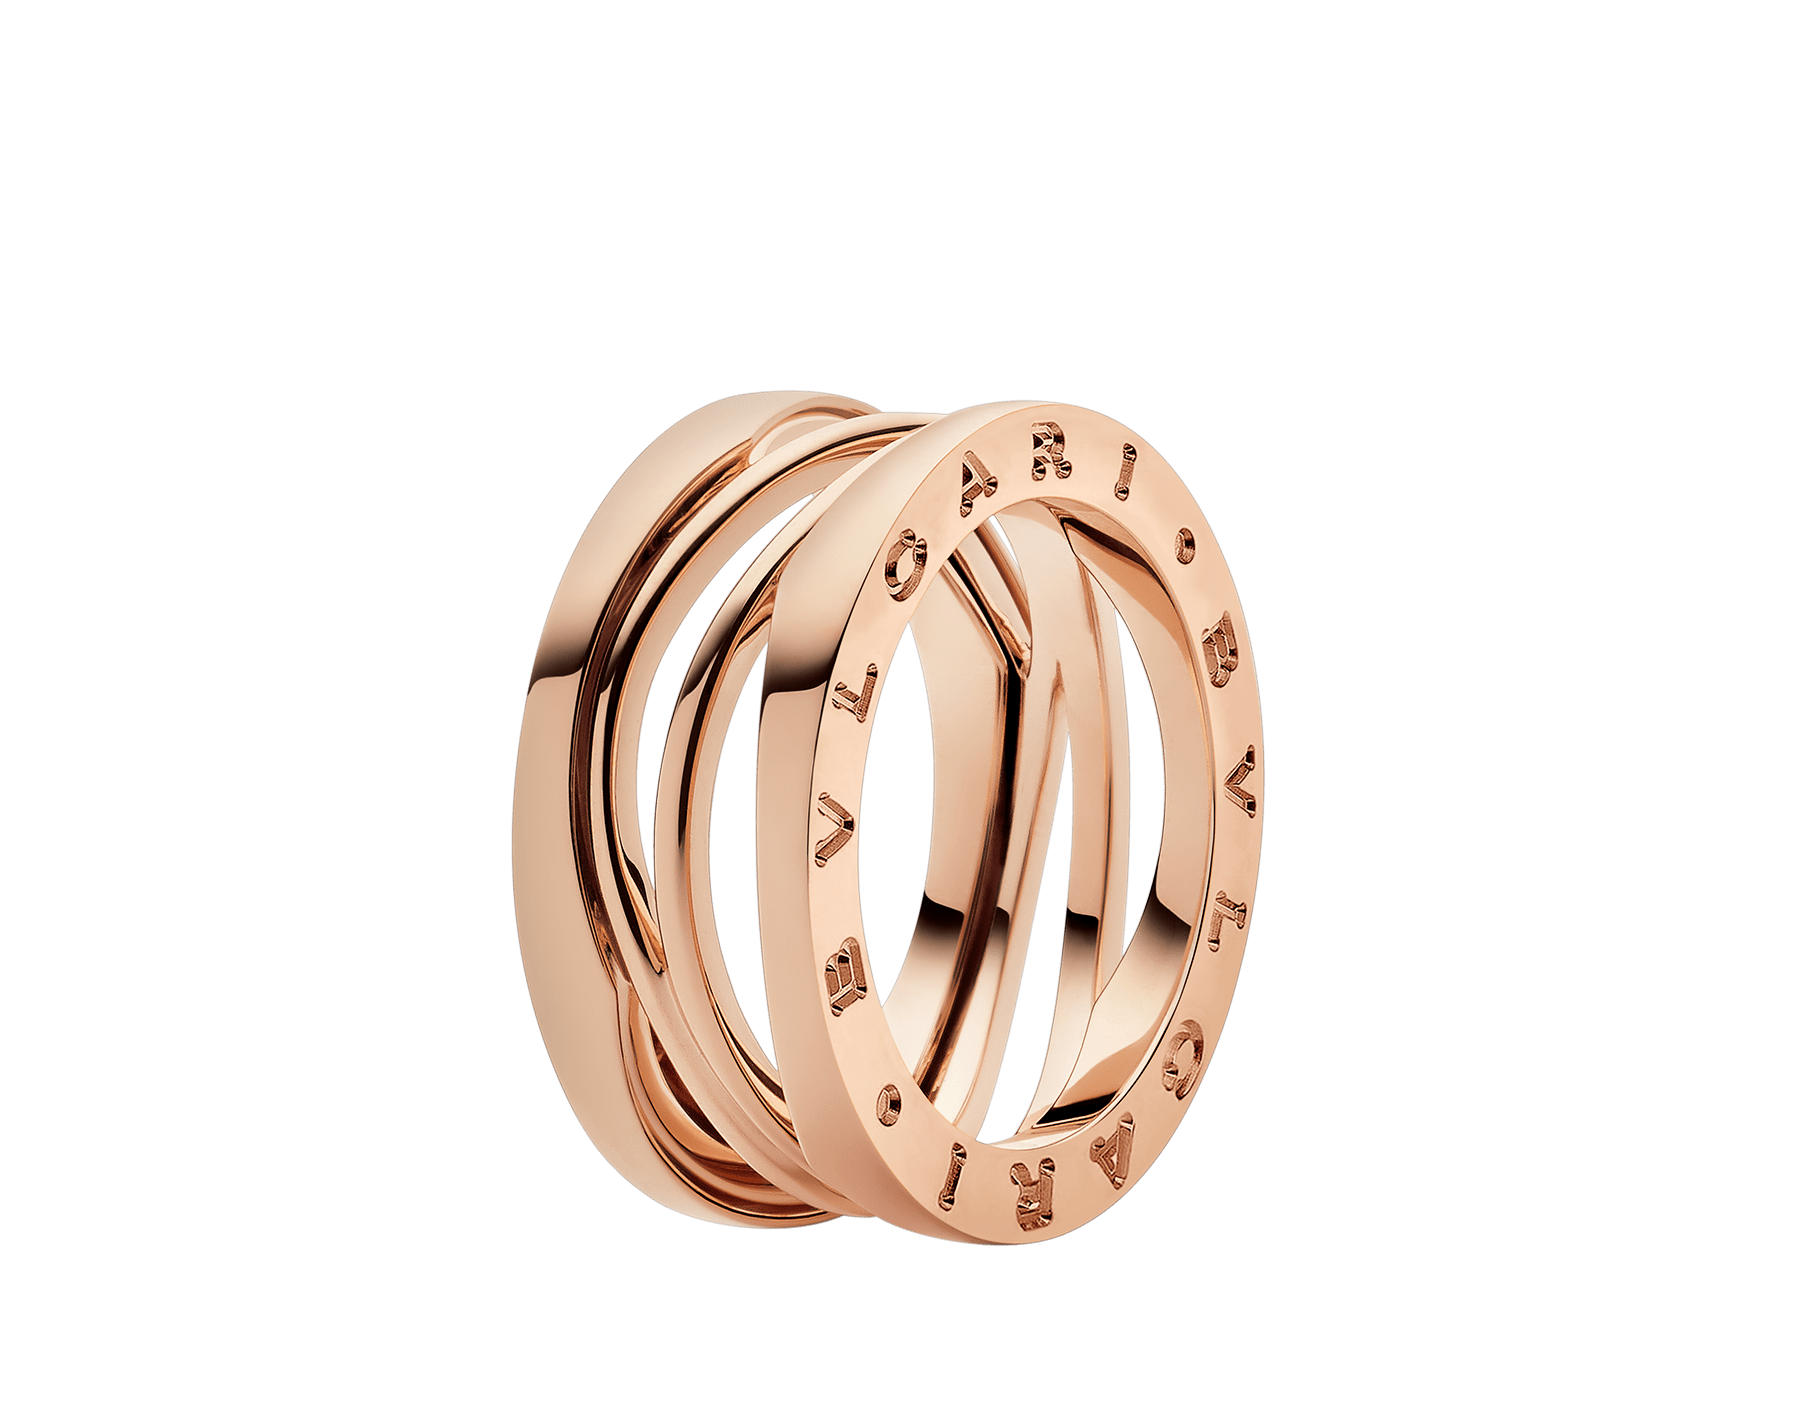 B.zero1 Design Legend three-band ring in 18 kt rose gold. B-zero1-3-bands-AN858029 image 1